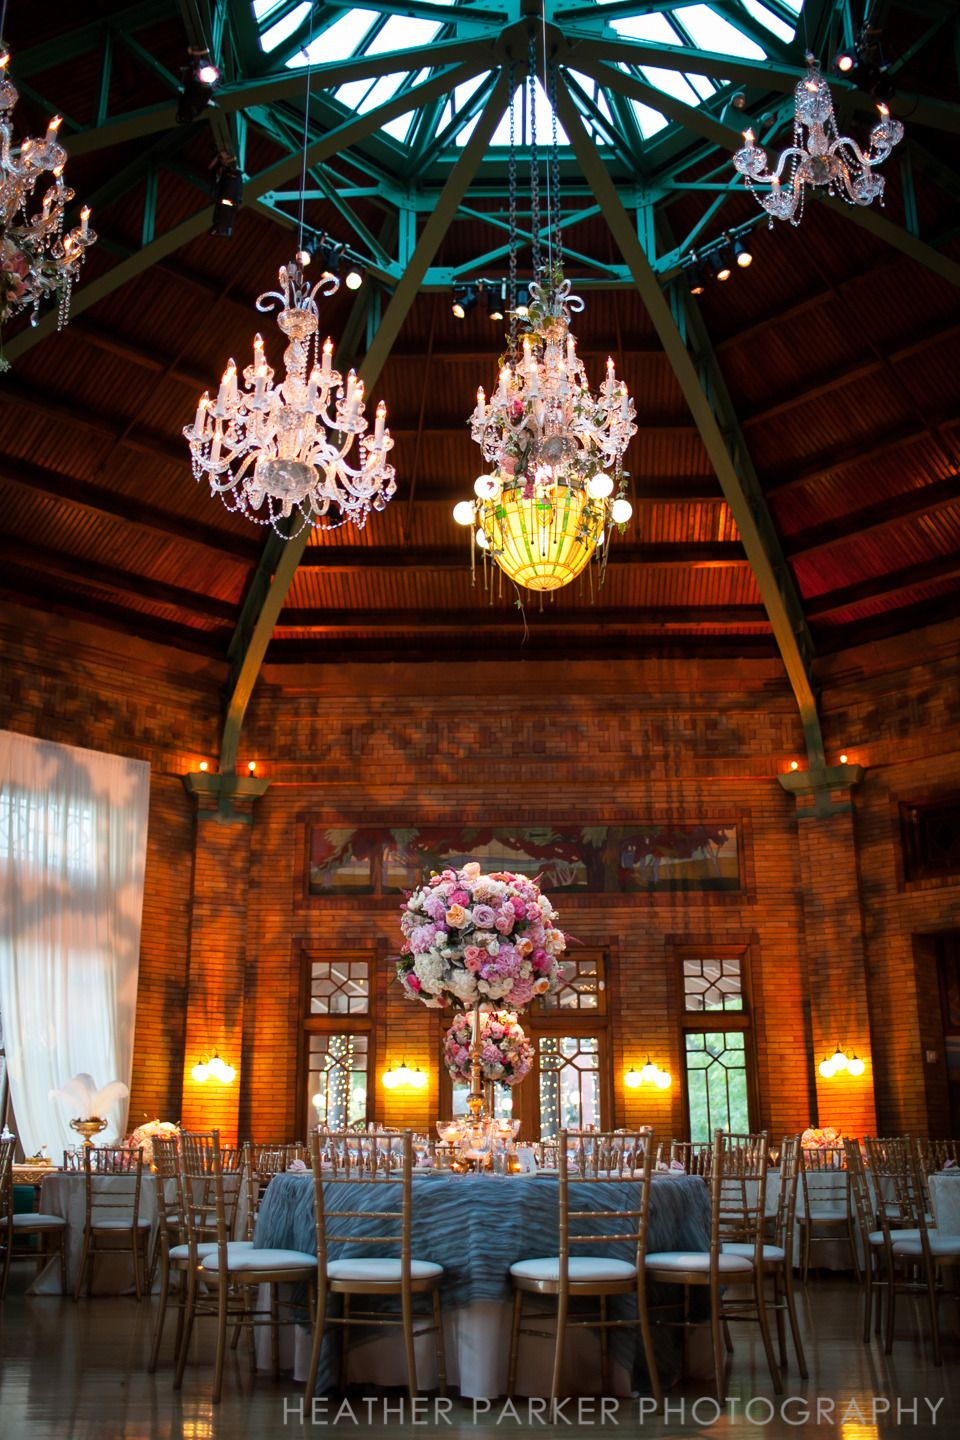 Romantic Chicago Wedding At Cafe Brauer From Heather Parker Photography I Do Films Chicago Wedding Venues Illinois Wedding Venues Chicago Wedding